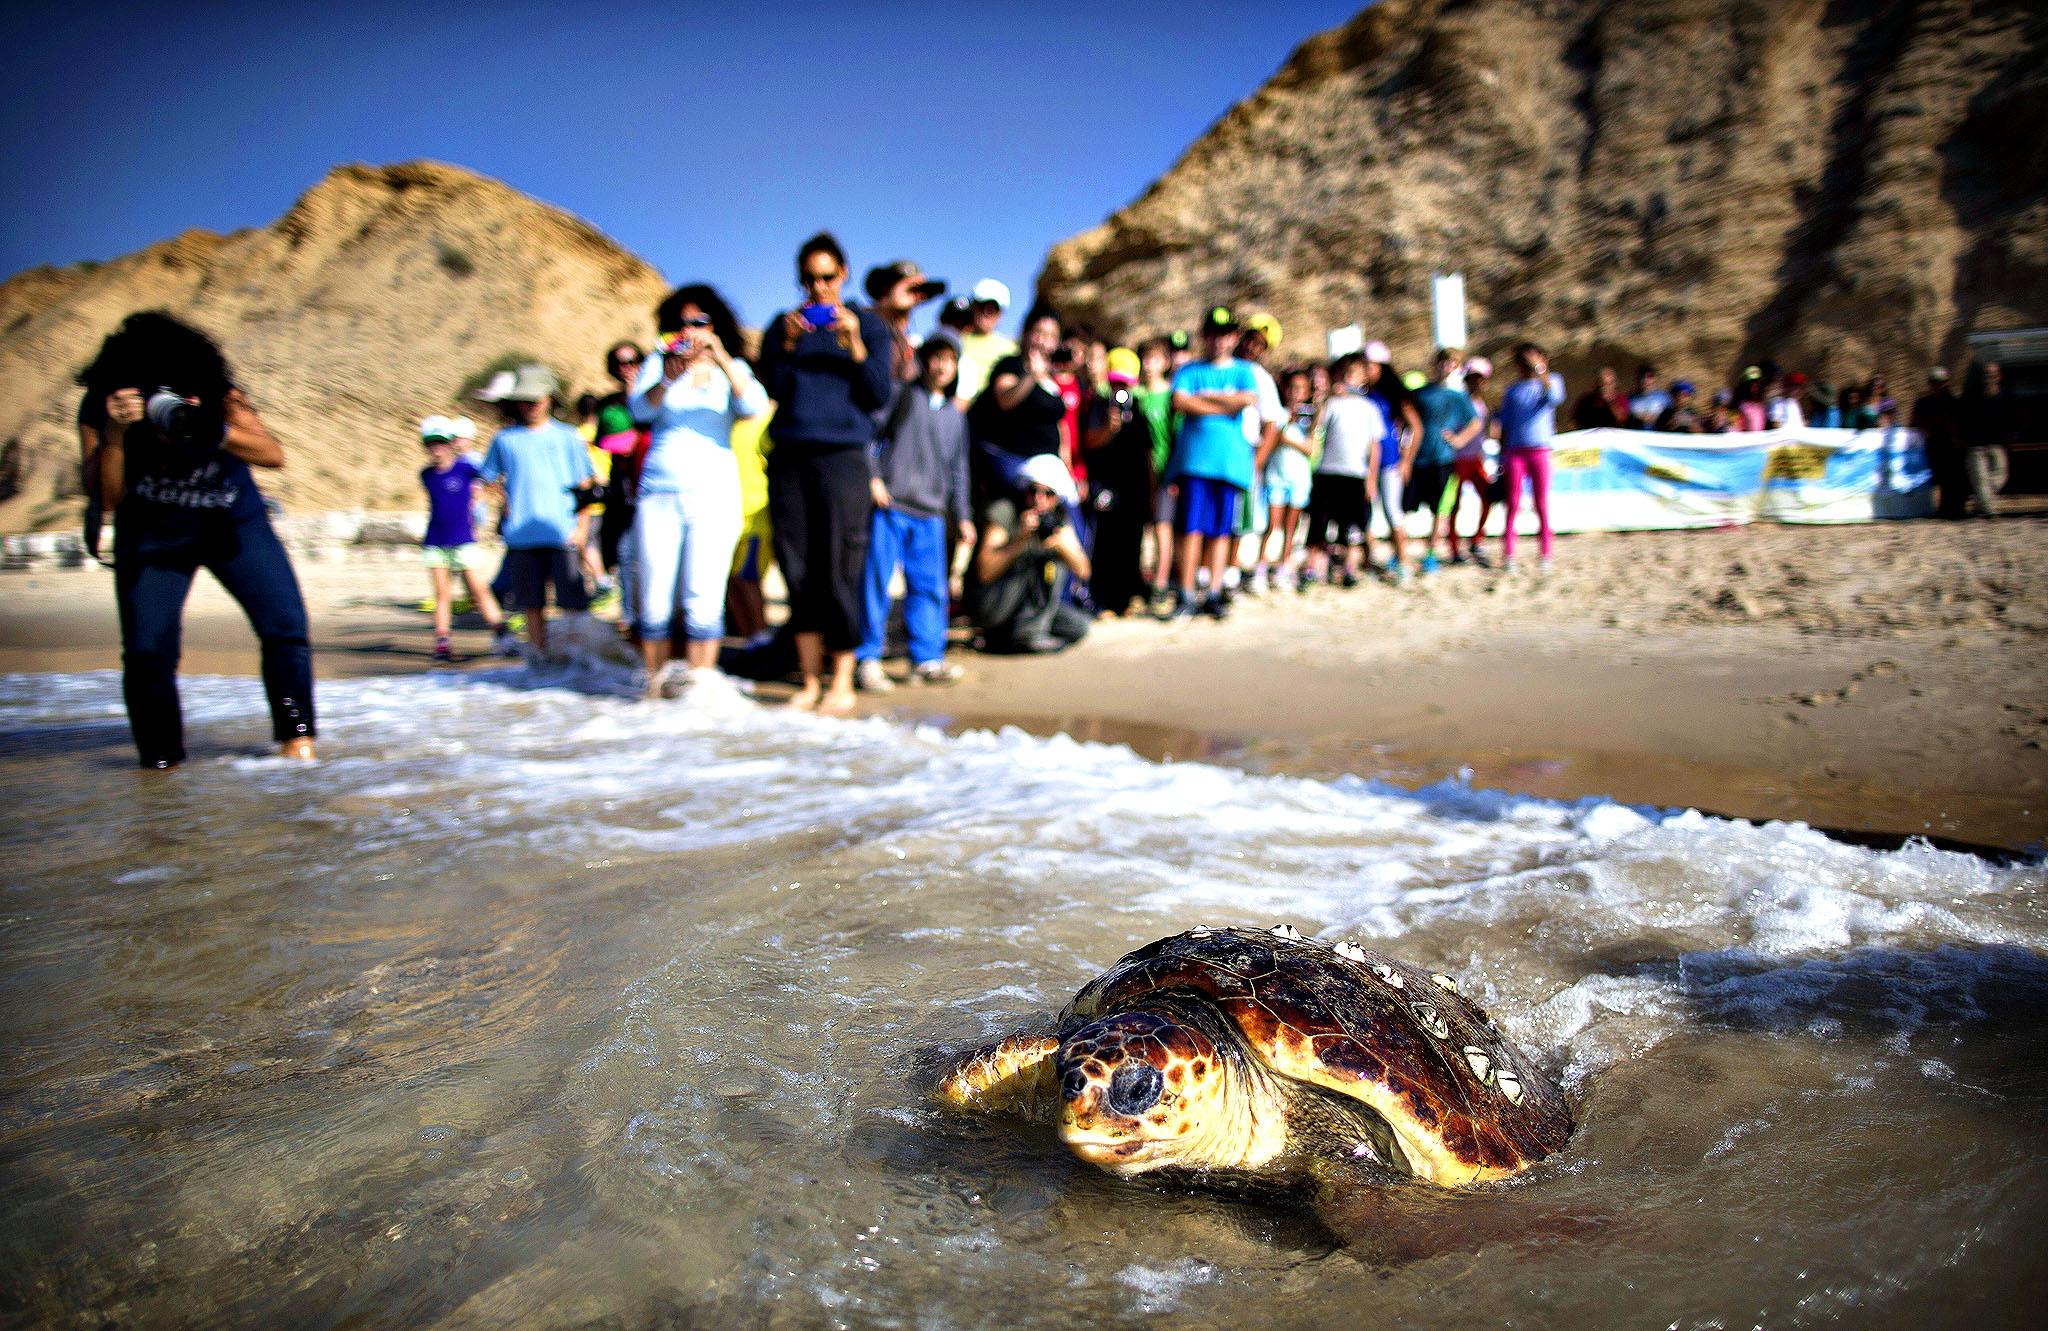 School children watch as volunteers of the Israeli sea turtle rescue center free a Loggerhead sea turtle back to the Mediterranean sea on November 21, 2013 in Gaash, Israel. The turtle is one of two wounded Loggerhead sea turtles that were rehabilitated at the rescue center and freed today. From transplanting turtle nests during the nesting season to protected beaches, through the rescue and treatment of wounded turtles brought in by fishermen or washed up on Israel's shores, to the development of a long-range breeding program for the threatened Green turtles, the volunteers and staff of the Israeli Nature and Parks Authority are doing their best to protect the creatures. The numbers have dwindled in the Mediterranean to an estimated 450 nesting female Green turtles and about 2500 nesting female Loggerheads. Far removed from man-made obstacles and protected from their natural predators such as crabs, foxes and birds, the hatchlings make their race to the sea with the hope that more than 20 years later they will return to the same beach to ensure the species survival.